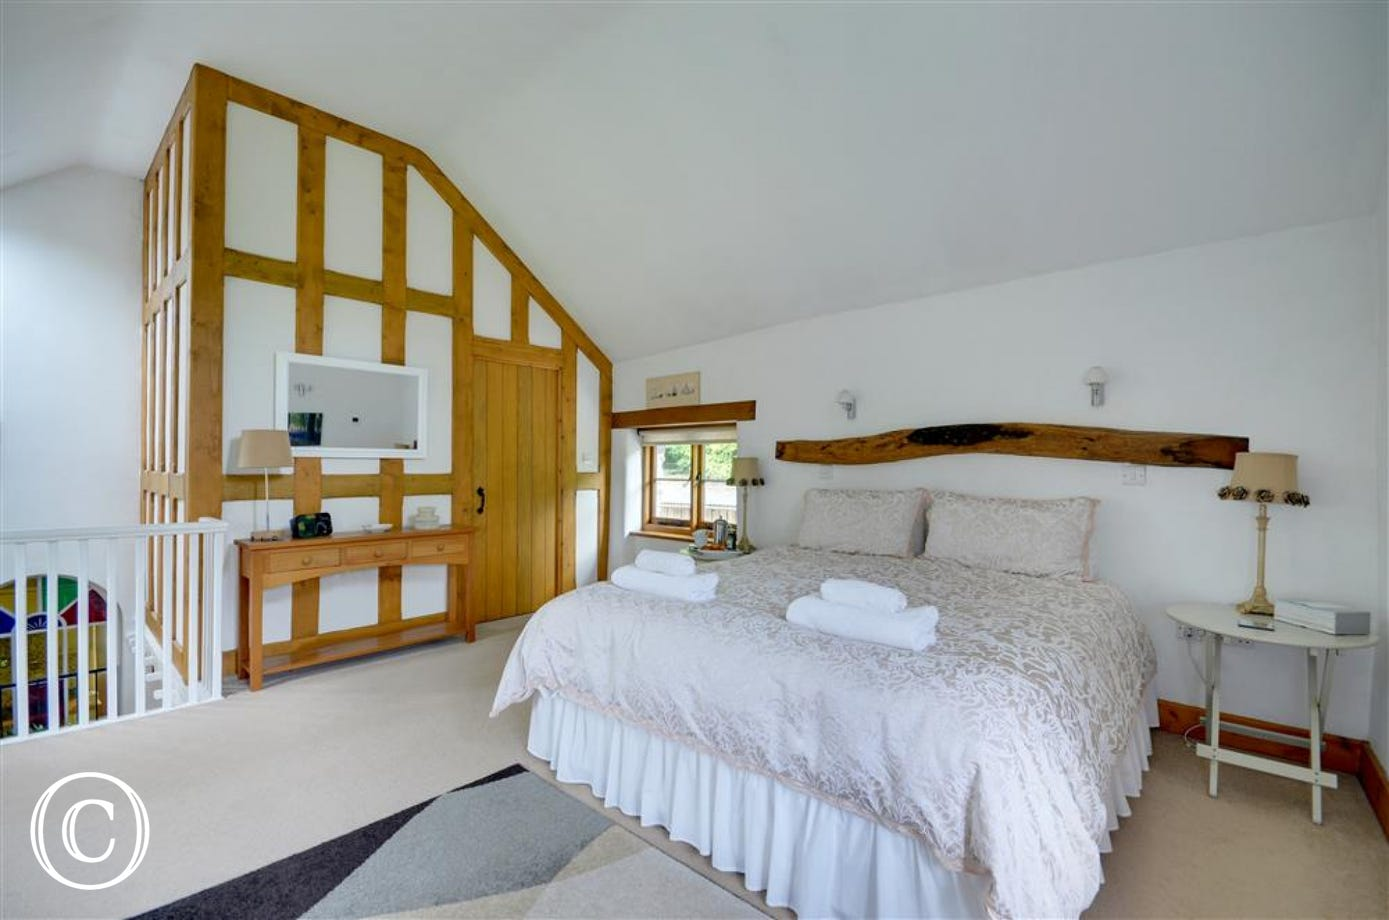 Beautifully decorated bedroom with super king size bed and ensuite bathroom